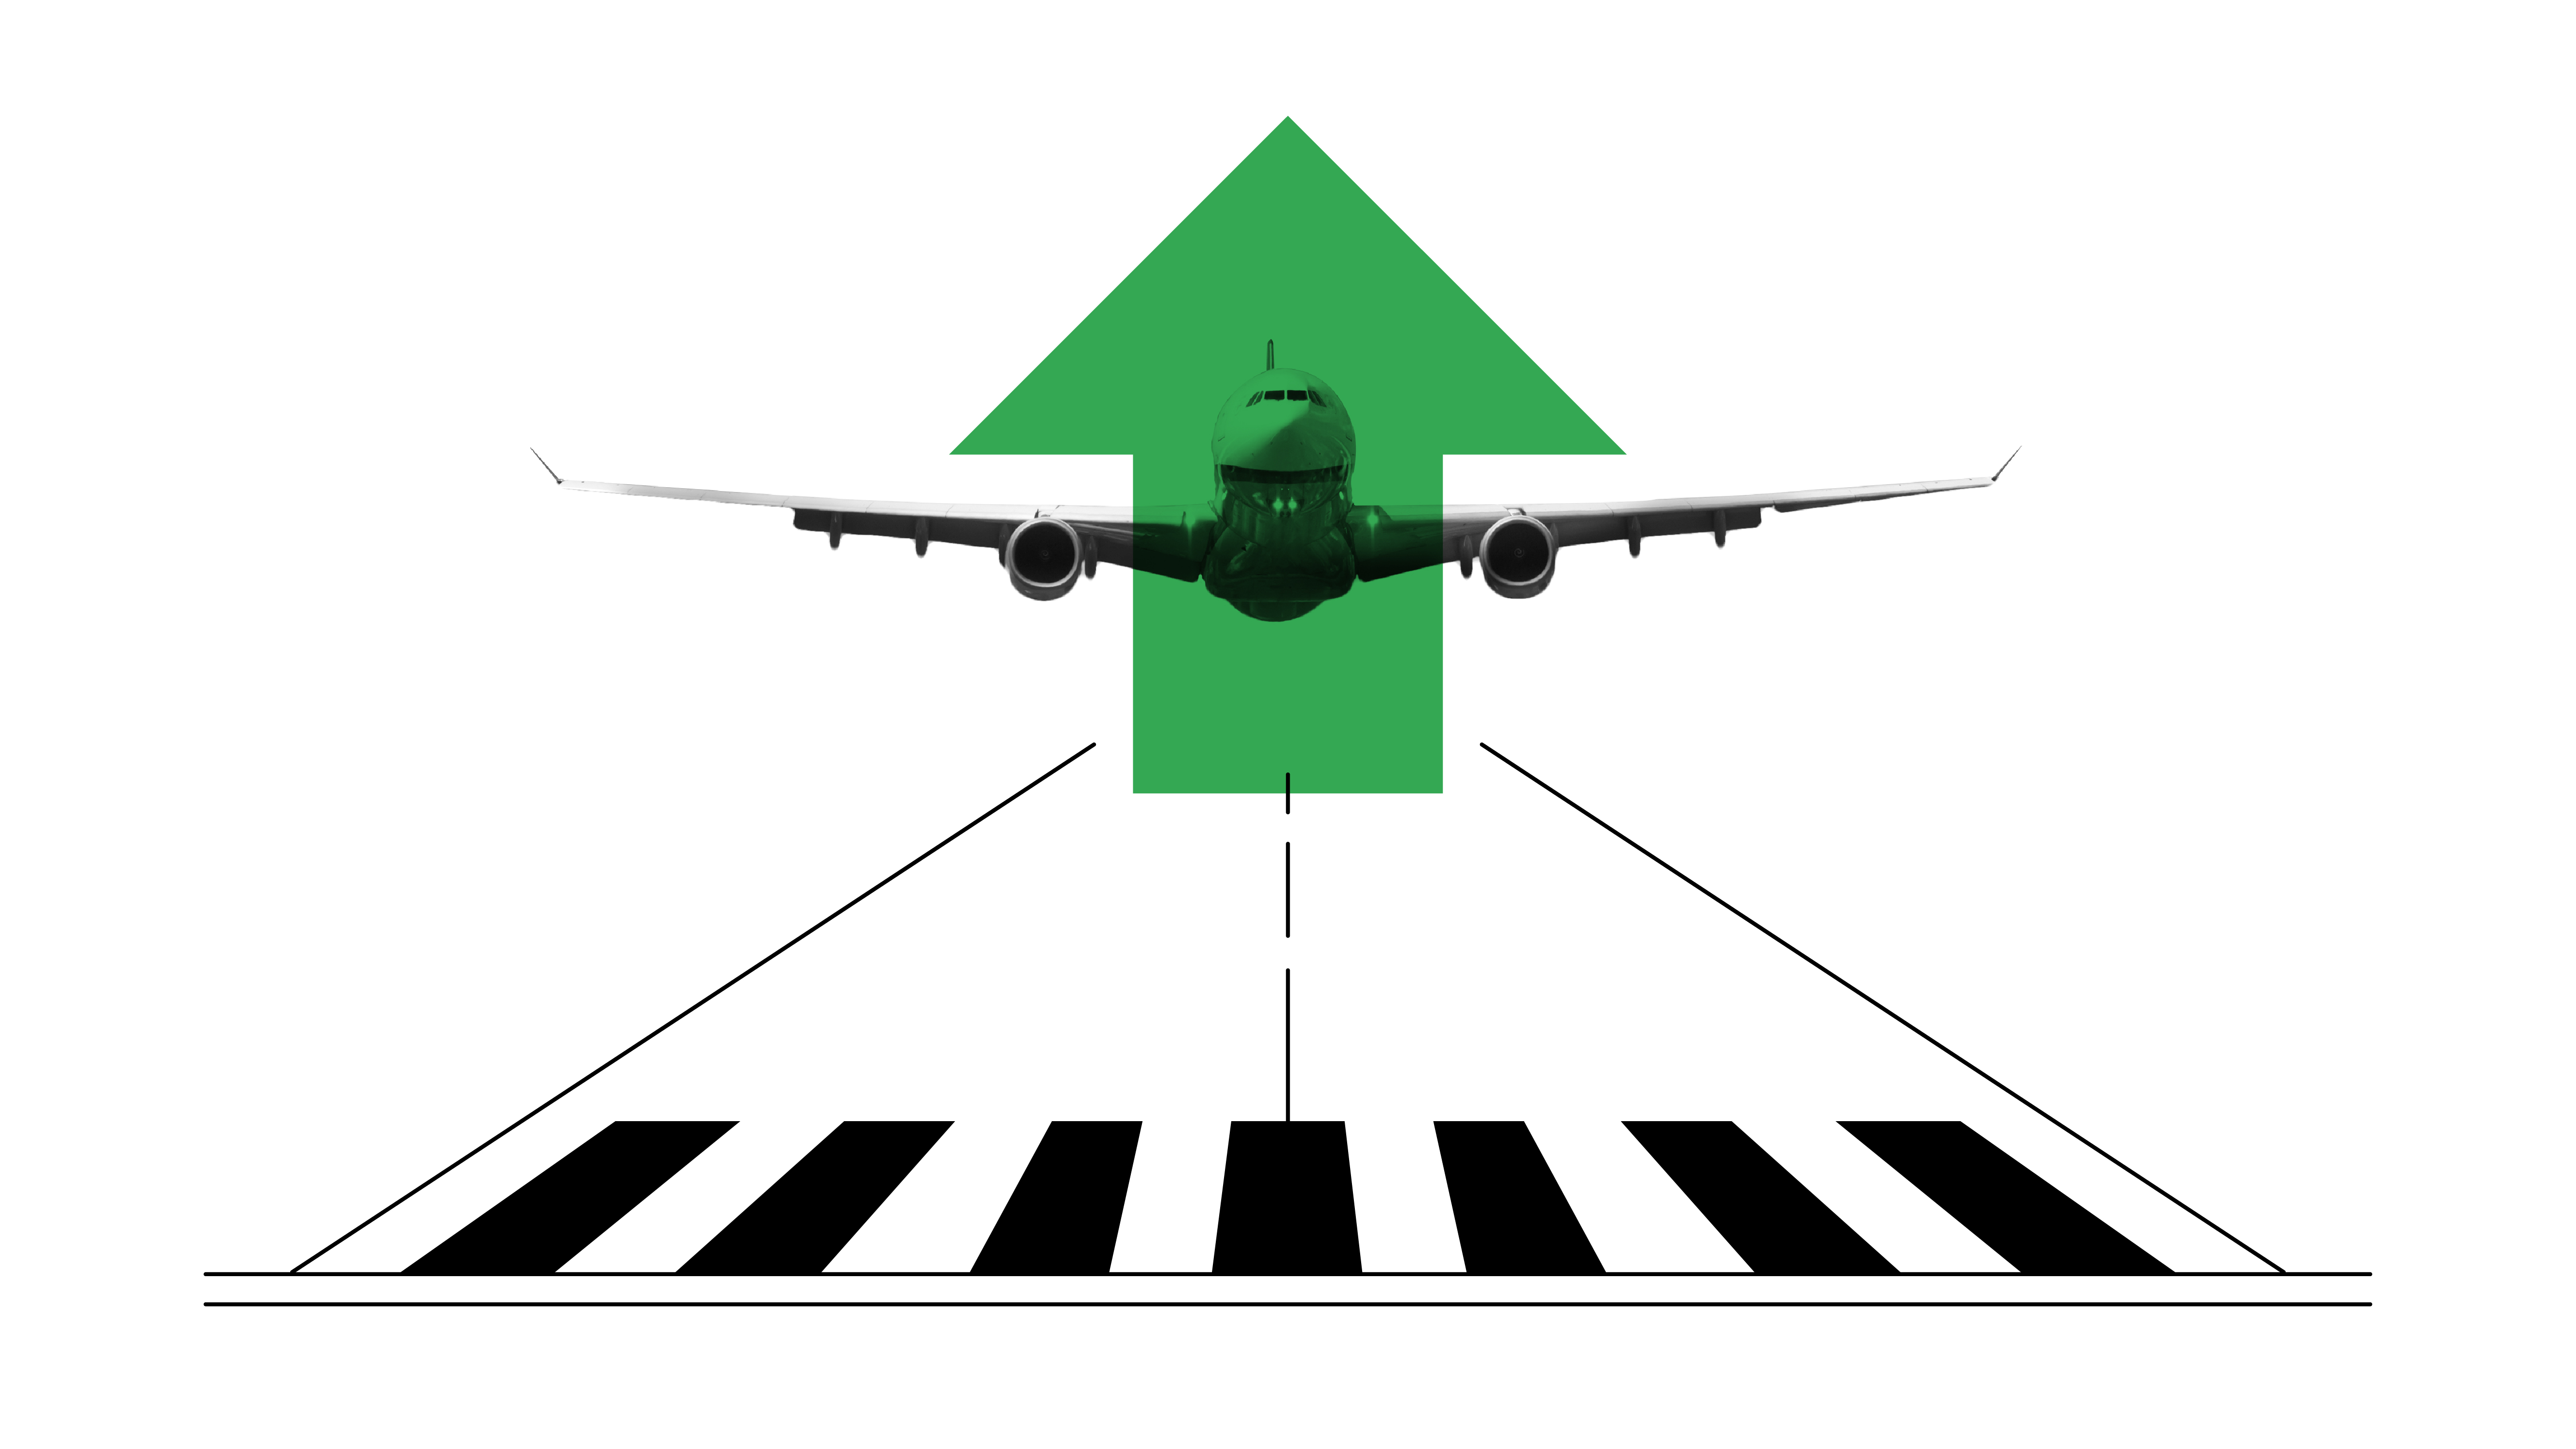 A black-and-white illustration of an airplane taking off on the runway with a striking green illustrated arrow overlayed on the airplane